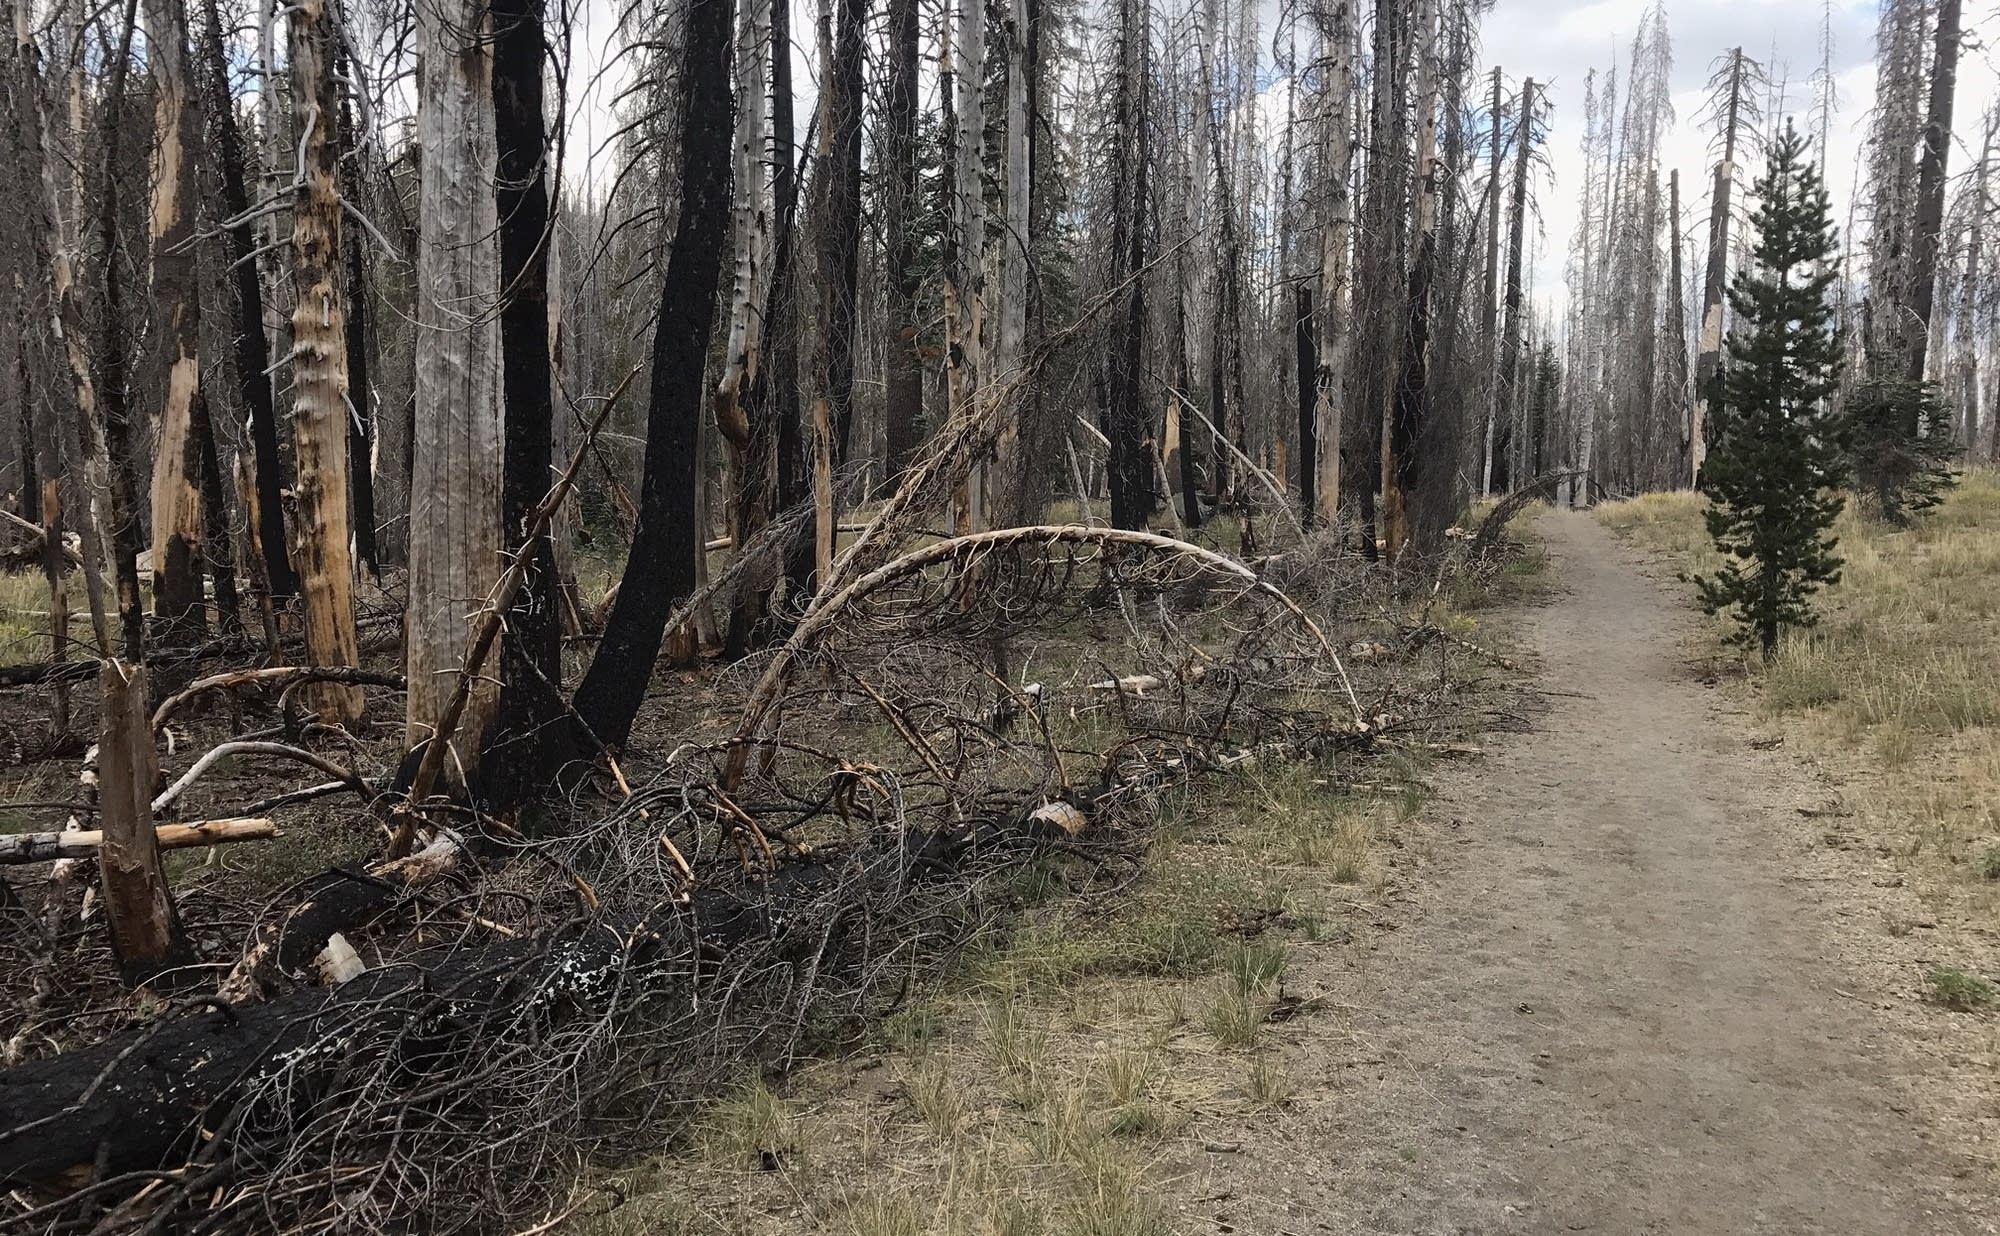 Trees charred by fire in the past